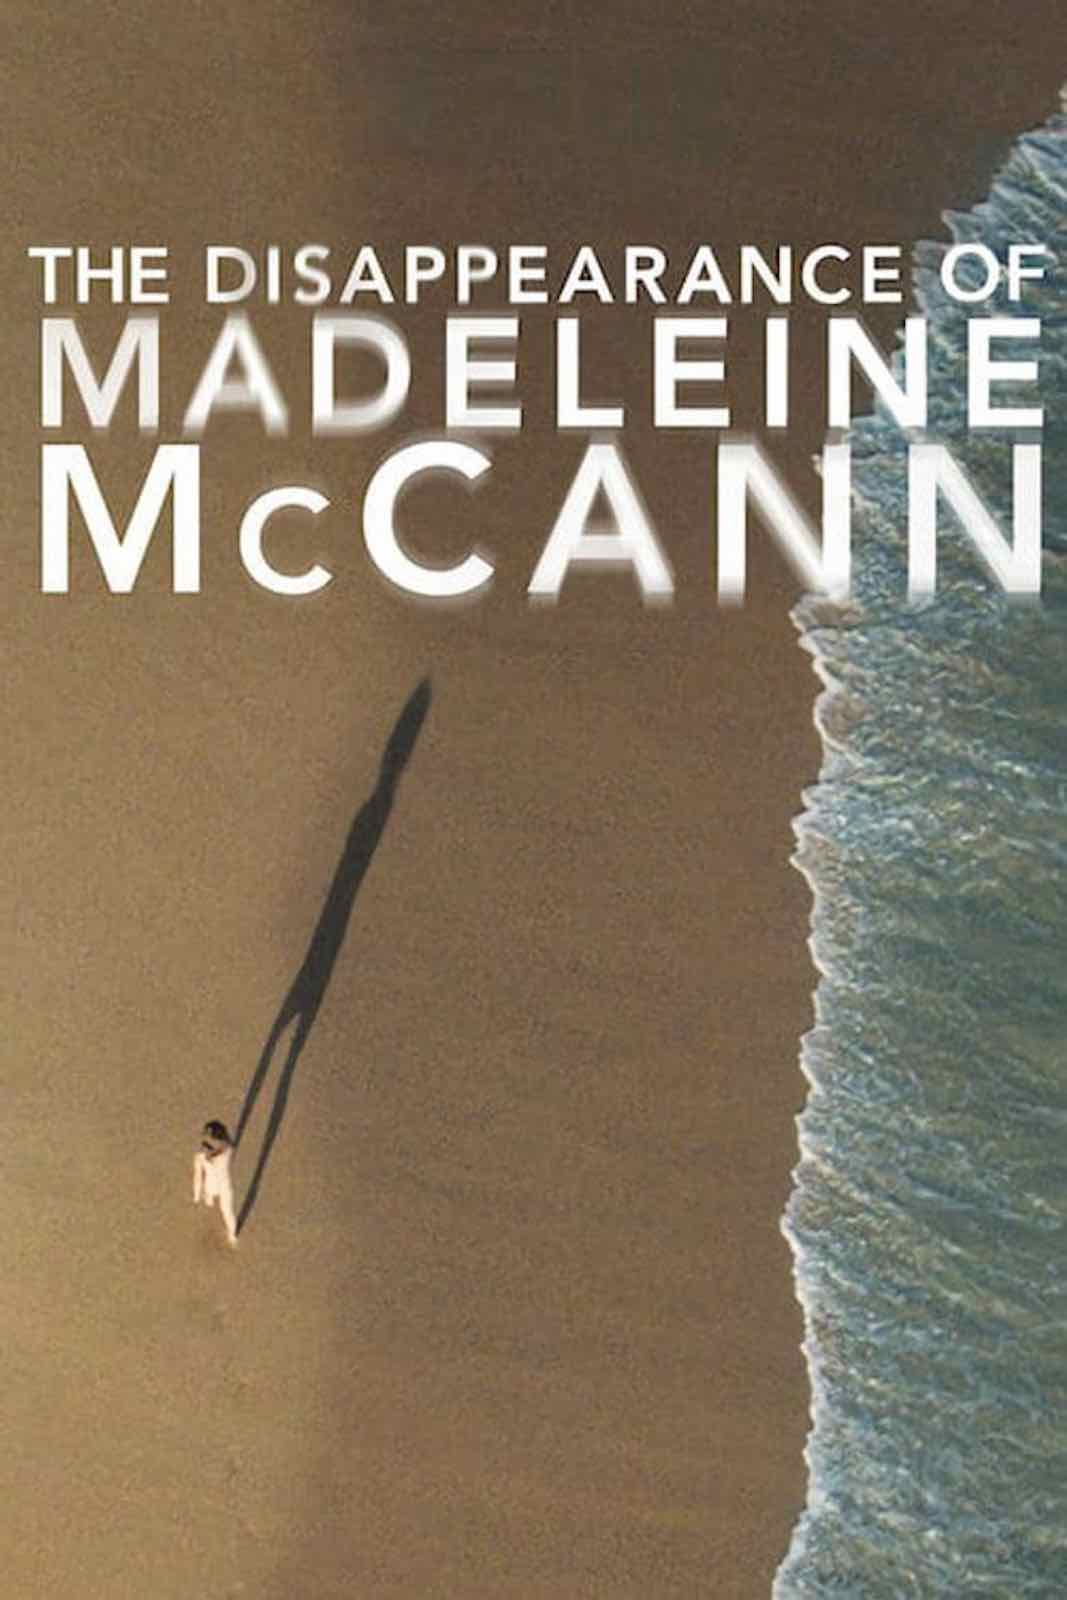 Film Daily 'Netflix' critique: 'The Disappearance of Madeleine McCann': Saddest true crime ever? The-Disappearance-of-Madeleine-McCann-4